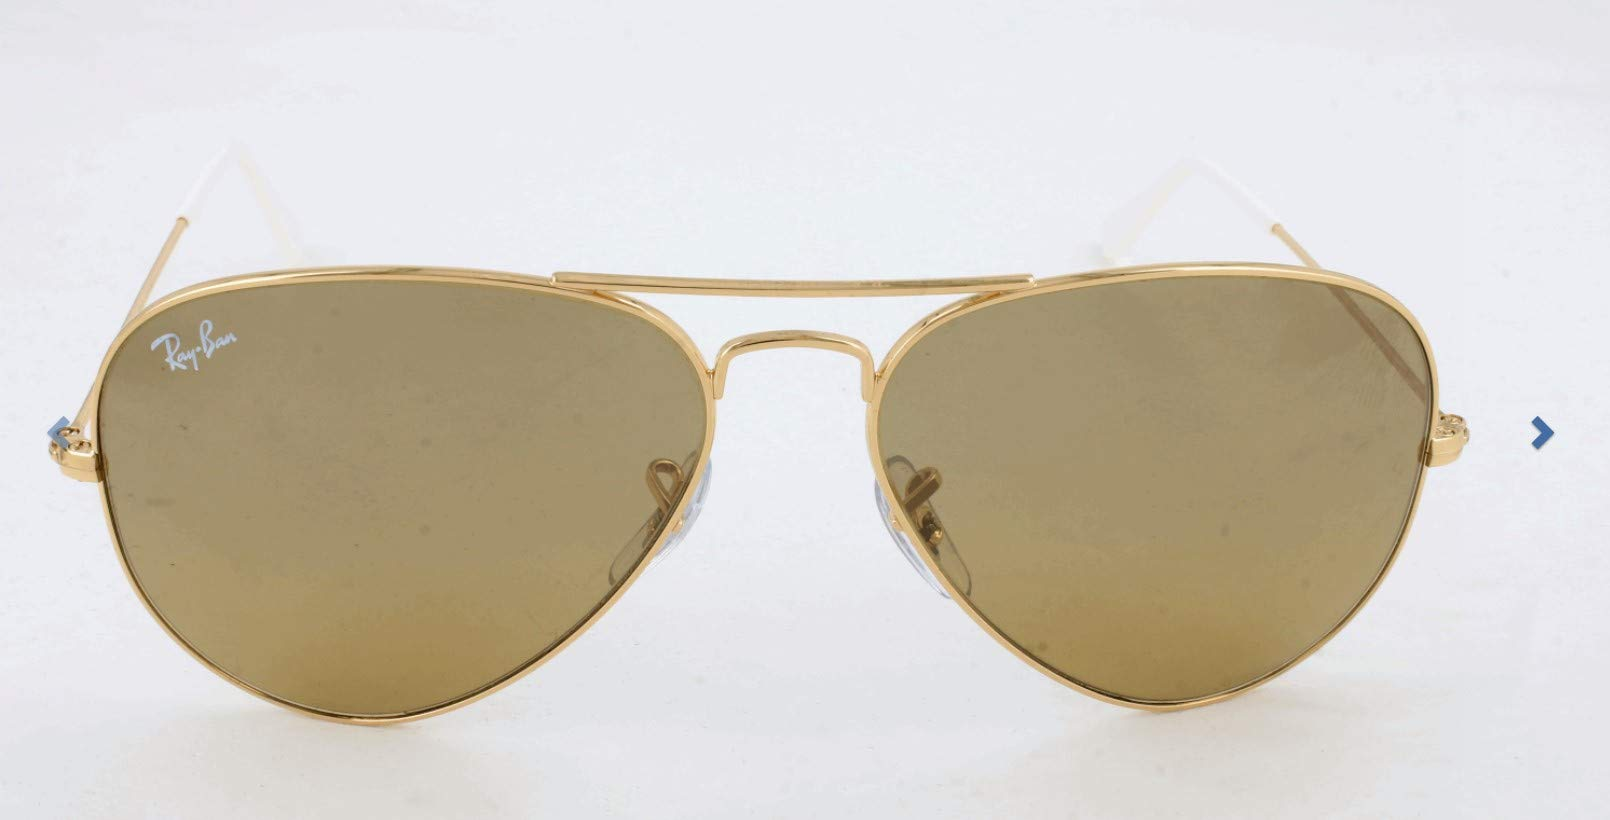 RAY-BAN RB3025 Aviator Large Metal Sunglasses, Gold/Brown Mirror Gradient, 55 mm by RAY-BAN